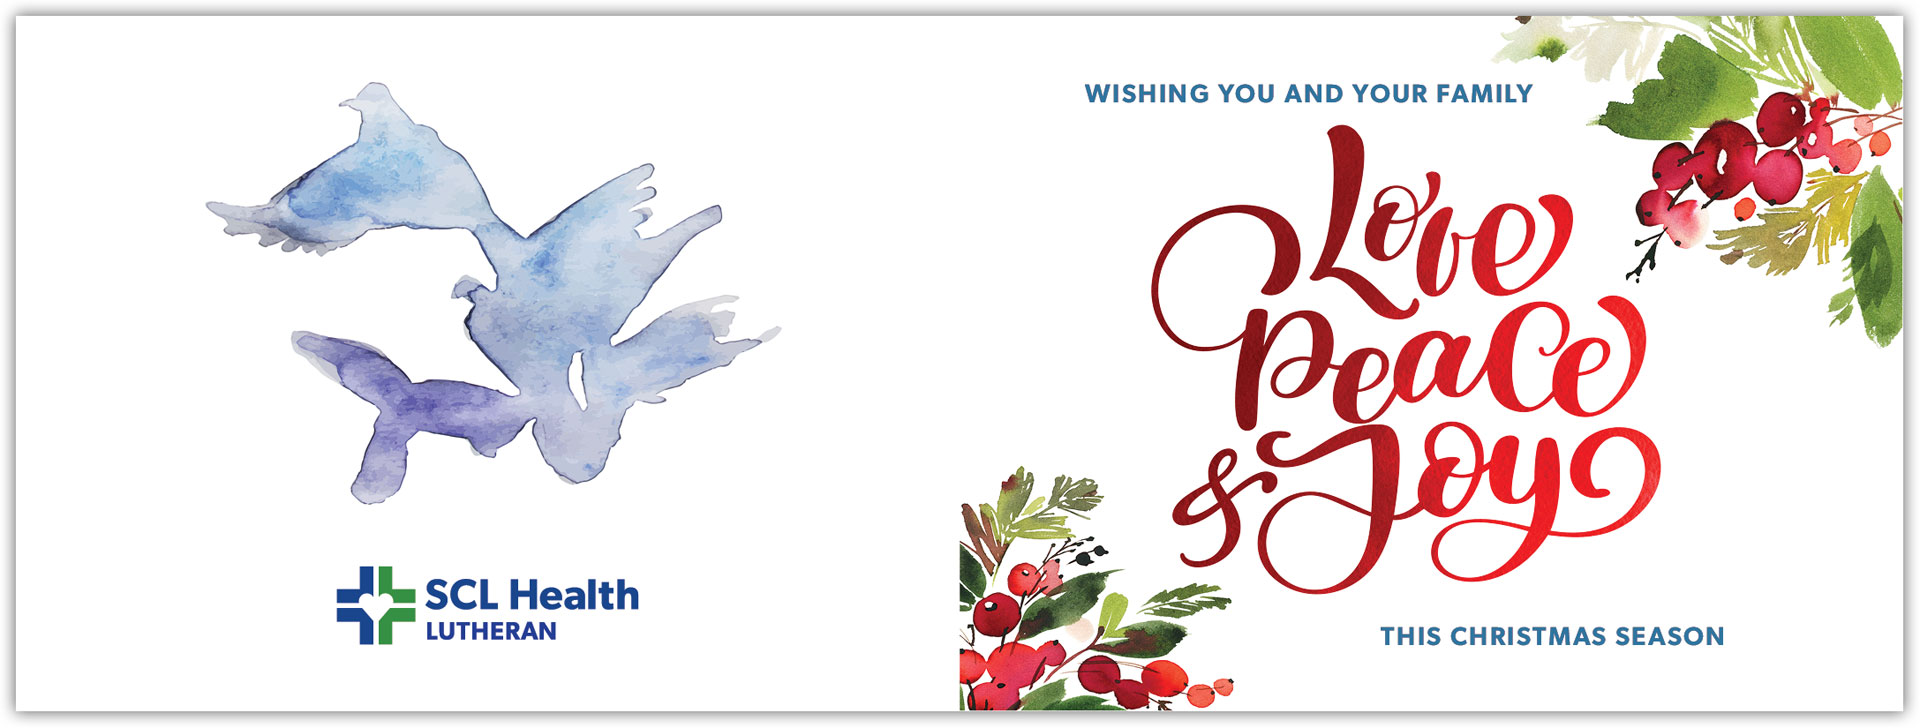 1920x728ChristmasGreeting2018LMC